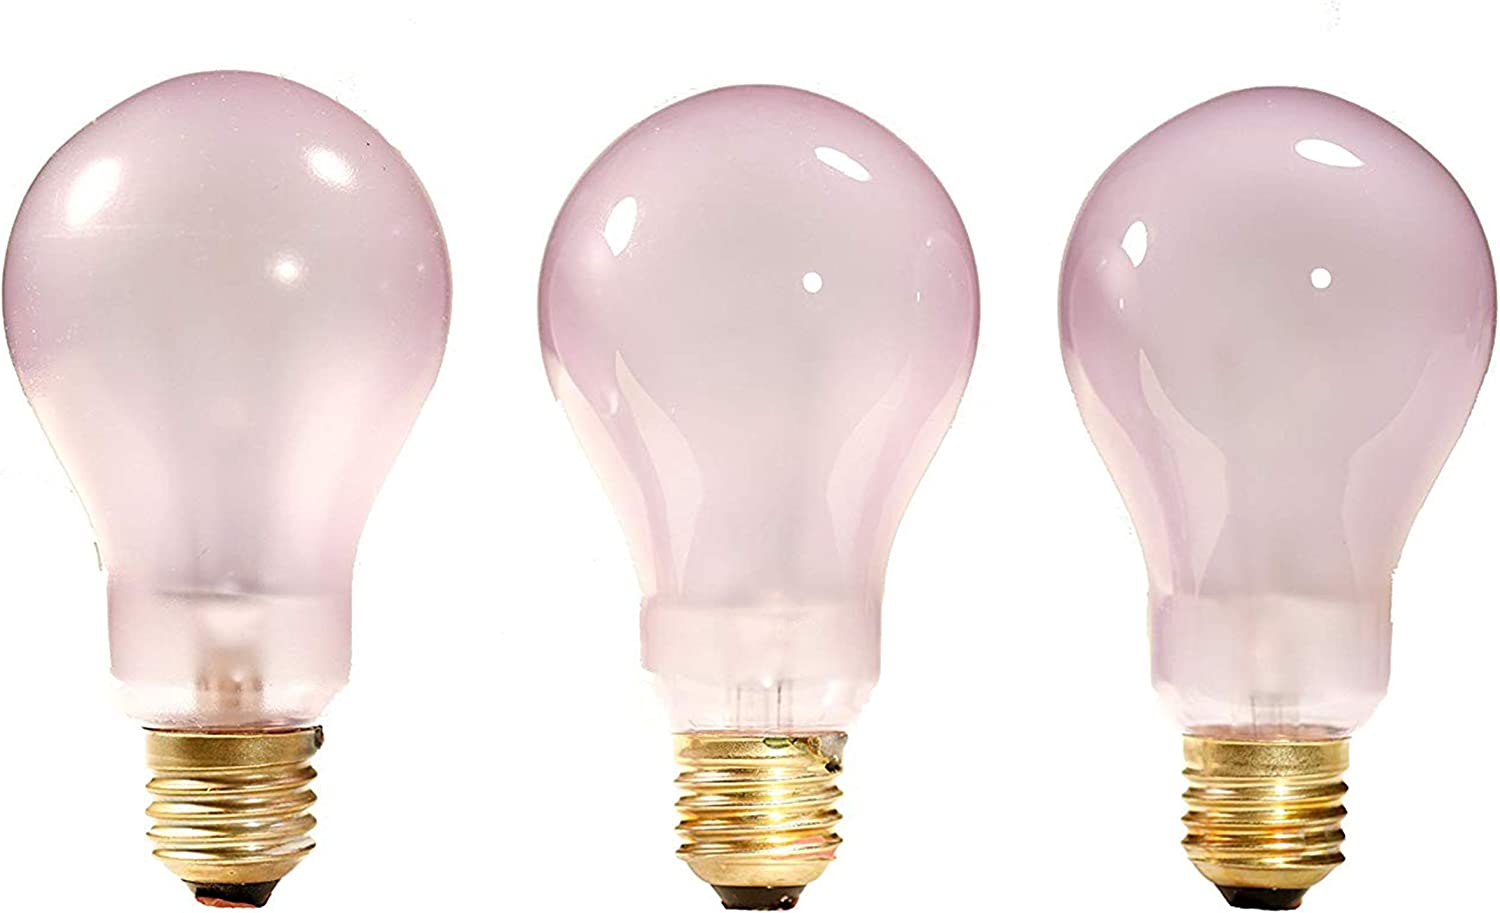 Promolux A21 Incandescent Bulb • Teflon Coated Shatter Resistant • Ideal for Hot Food Display Cases • Box of 20